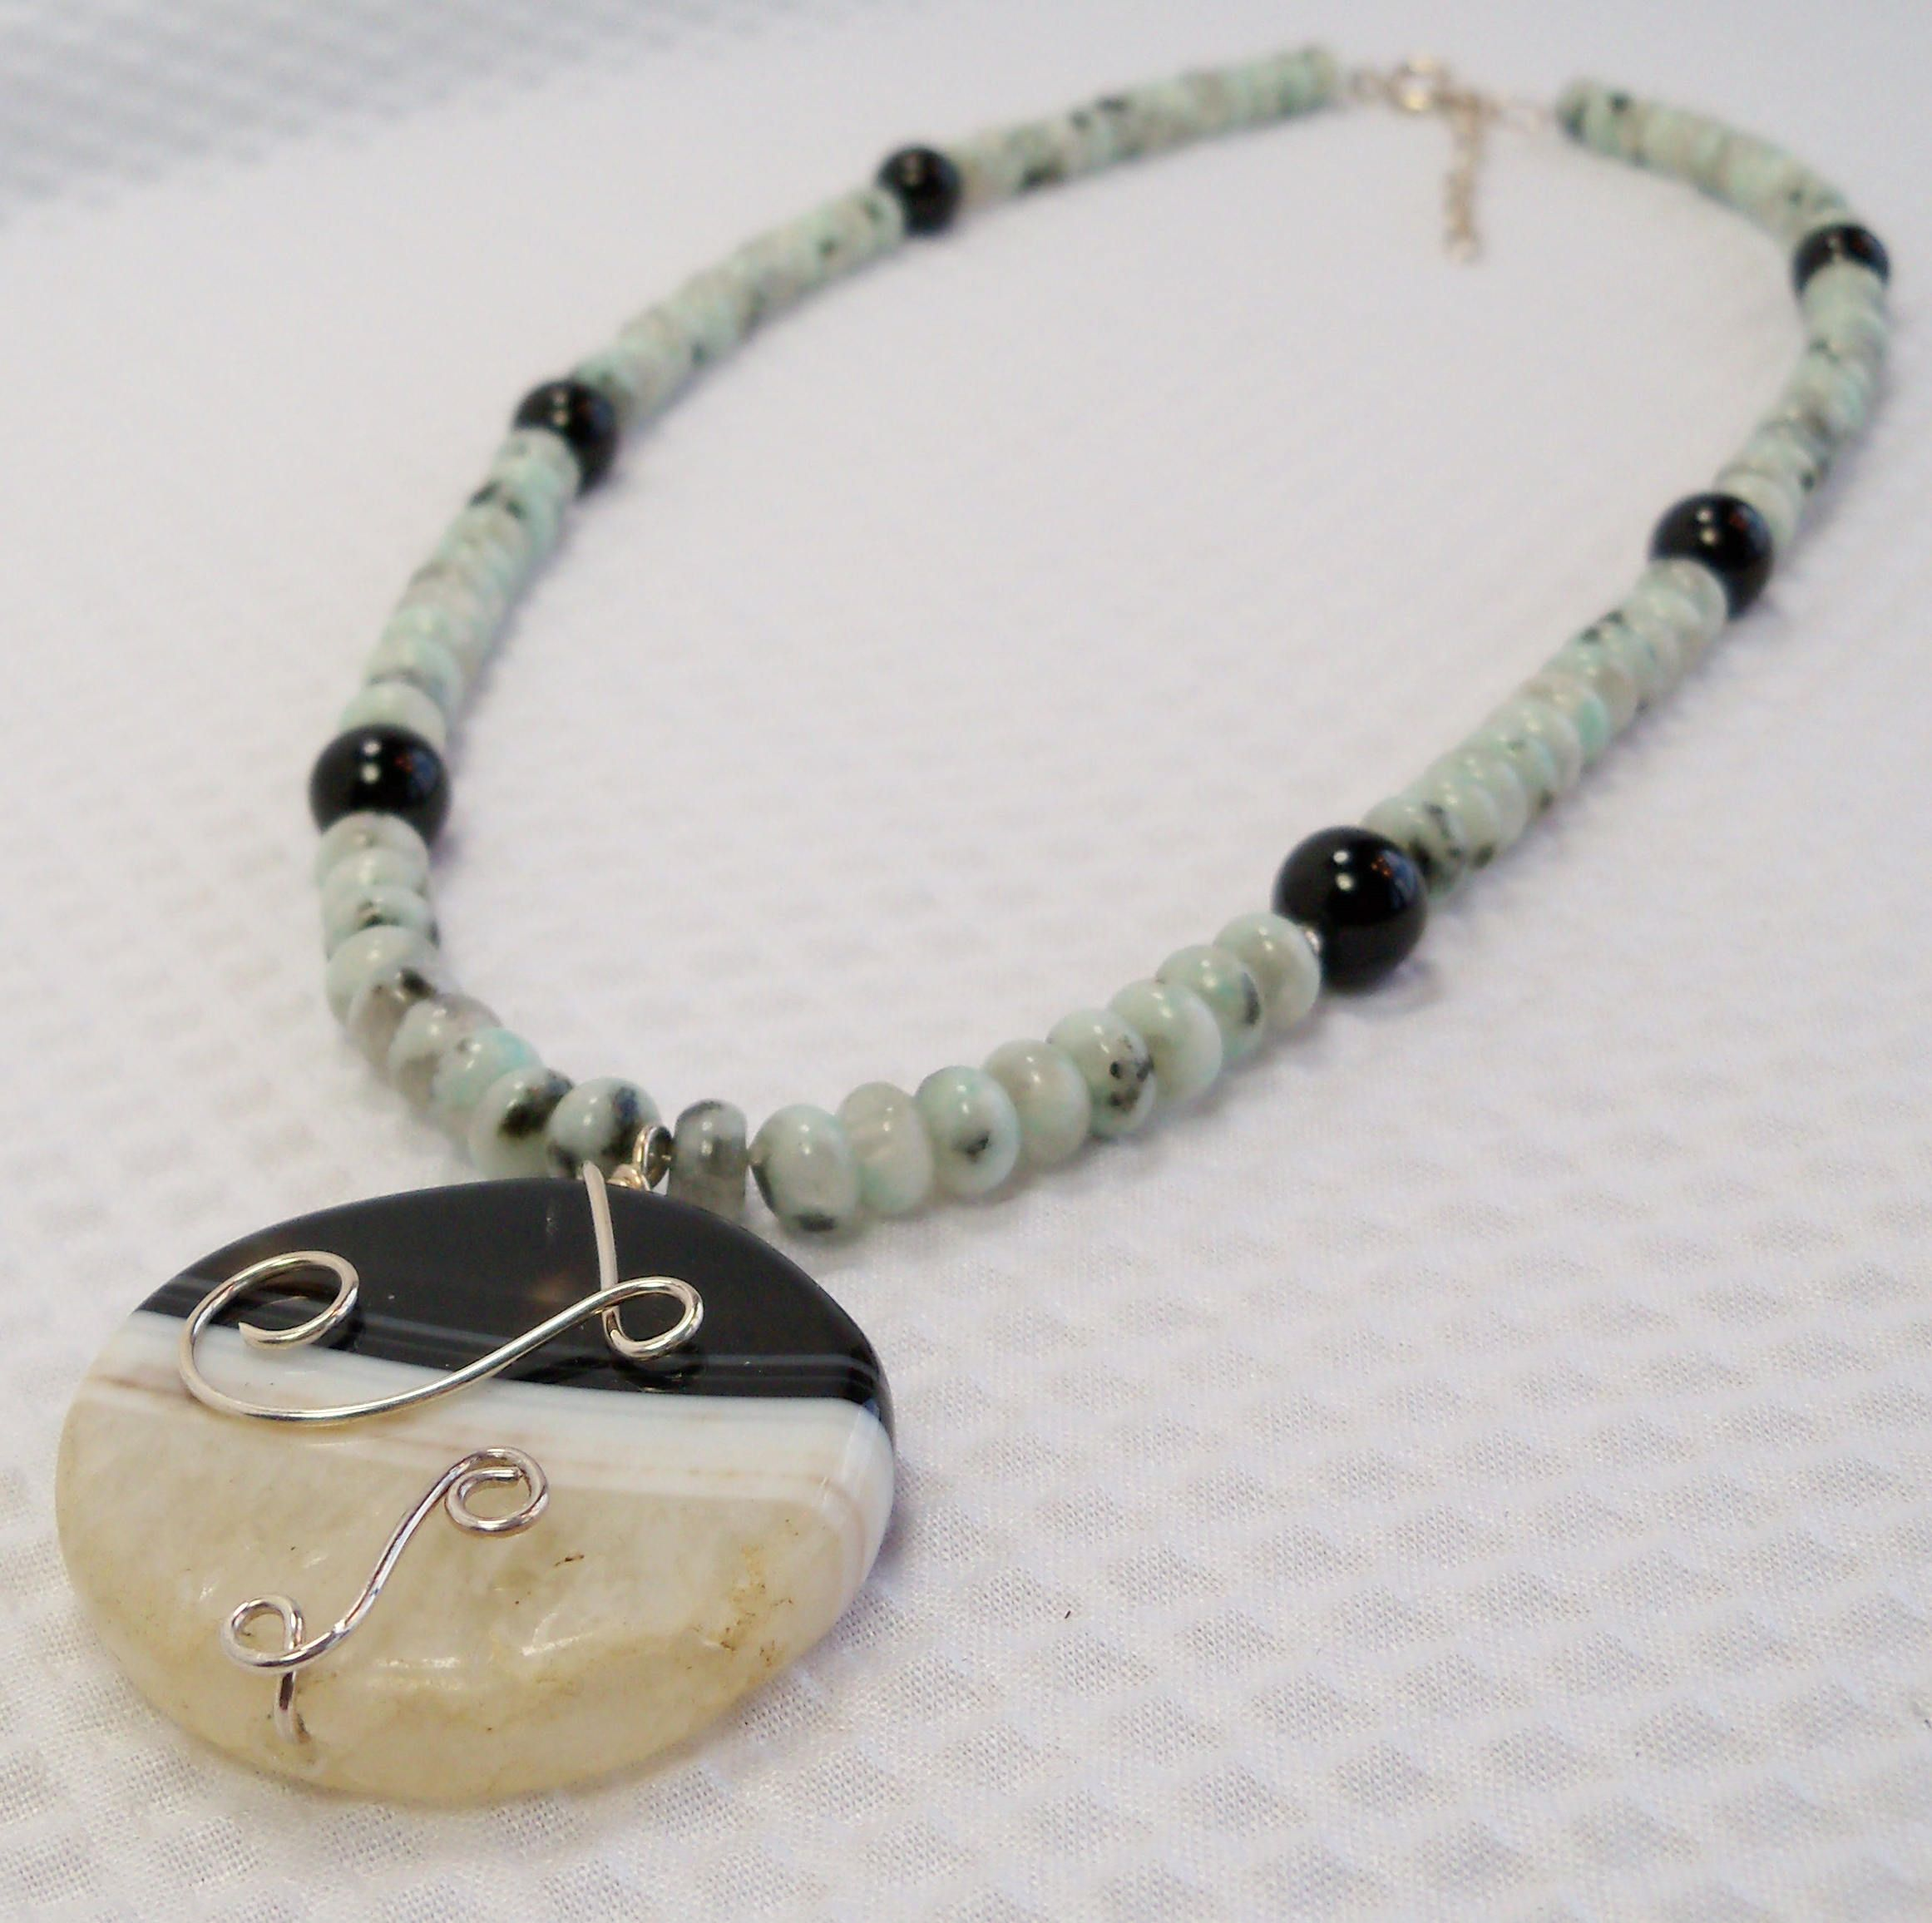 jewelry tues artisan by jan celia photography luxury etsy necklace christine smith onyx black